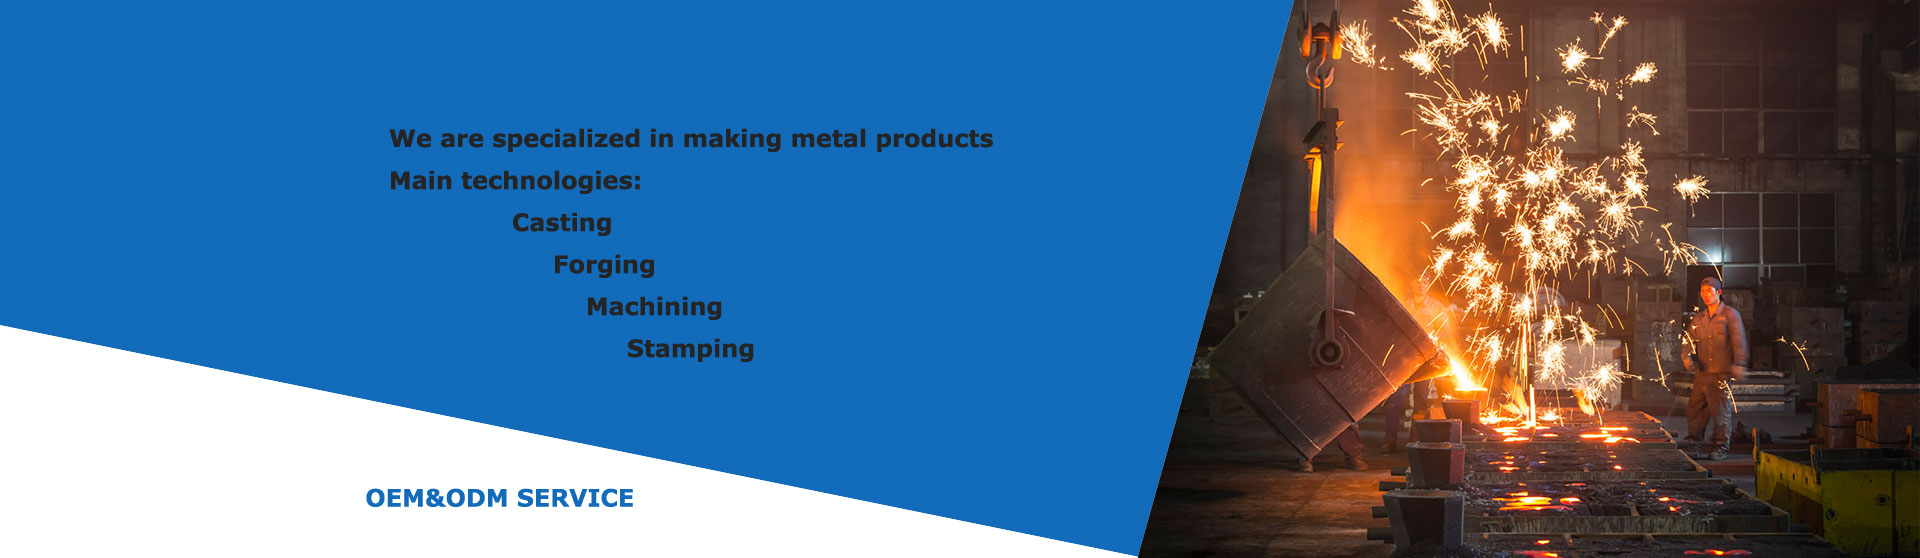 Technologies-Casting, Forging, Machining, Stamping-OEM&ODM-Bacsoont